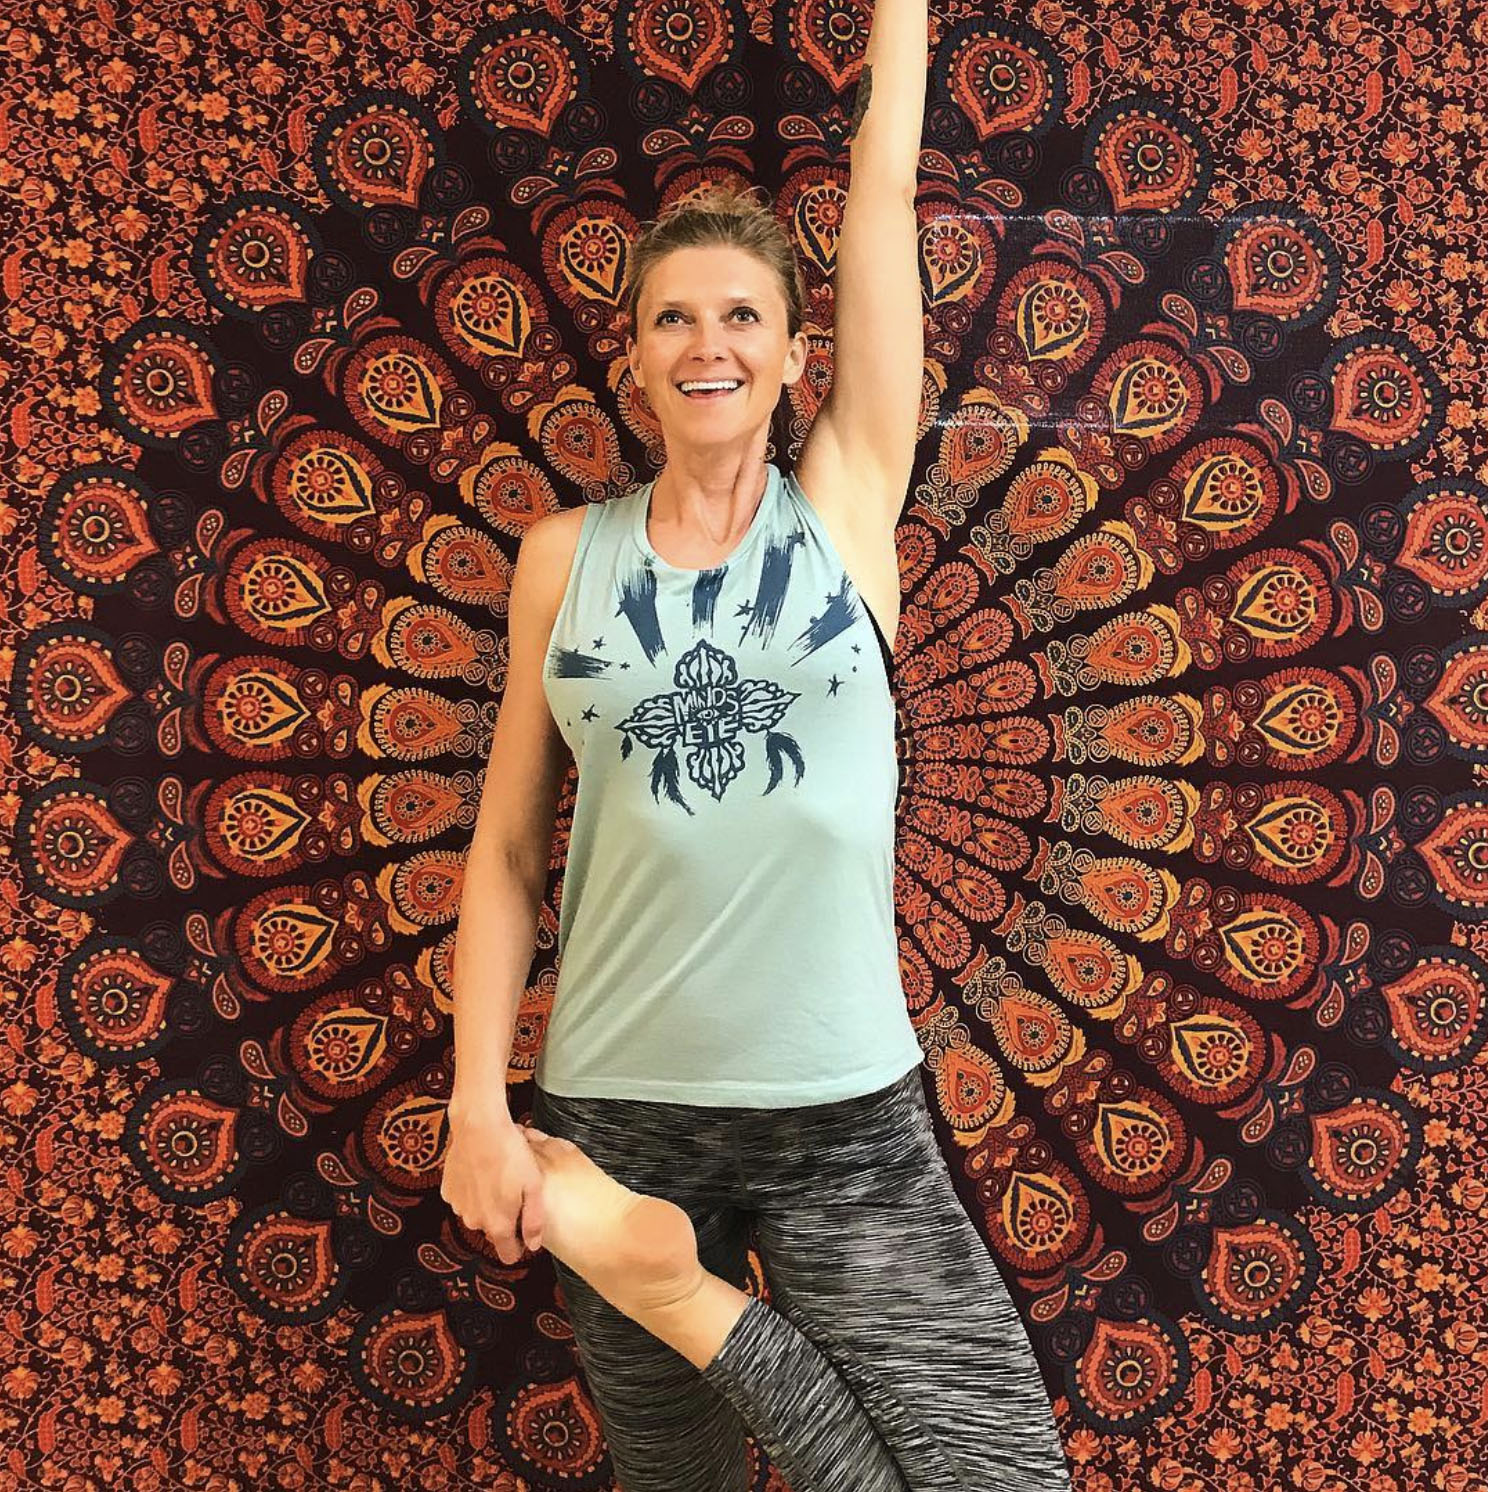 HAVE A GREAT DAY NO MATTER WHAT @MYDHARMA_YOGA WEARING THE SPIRITWALKER TANK